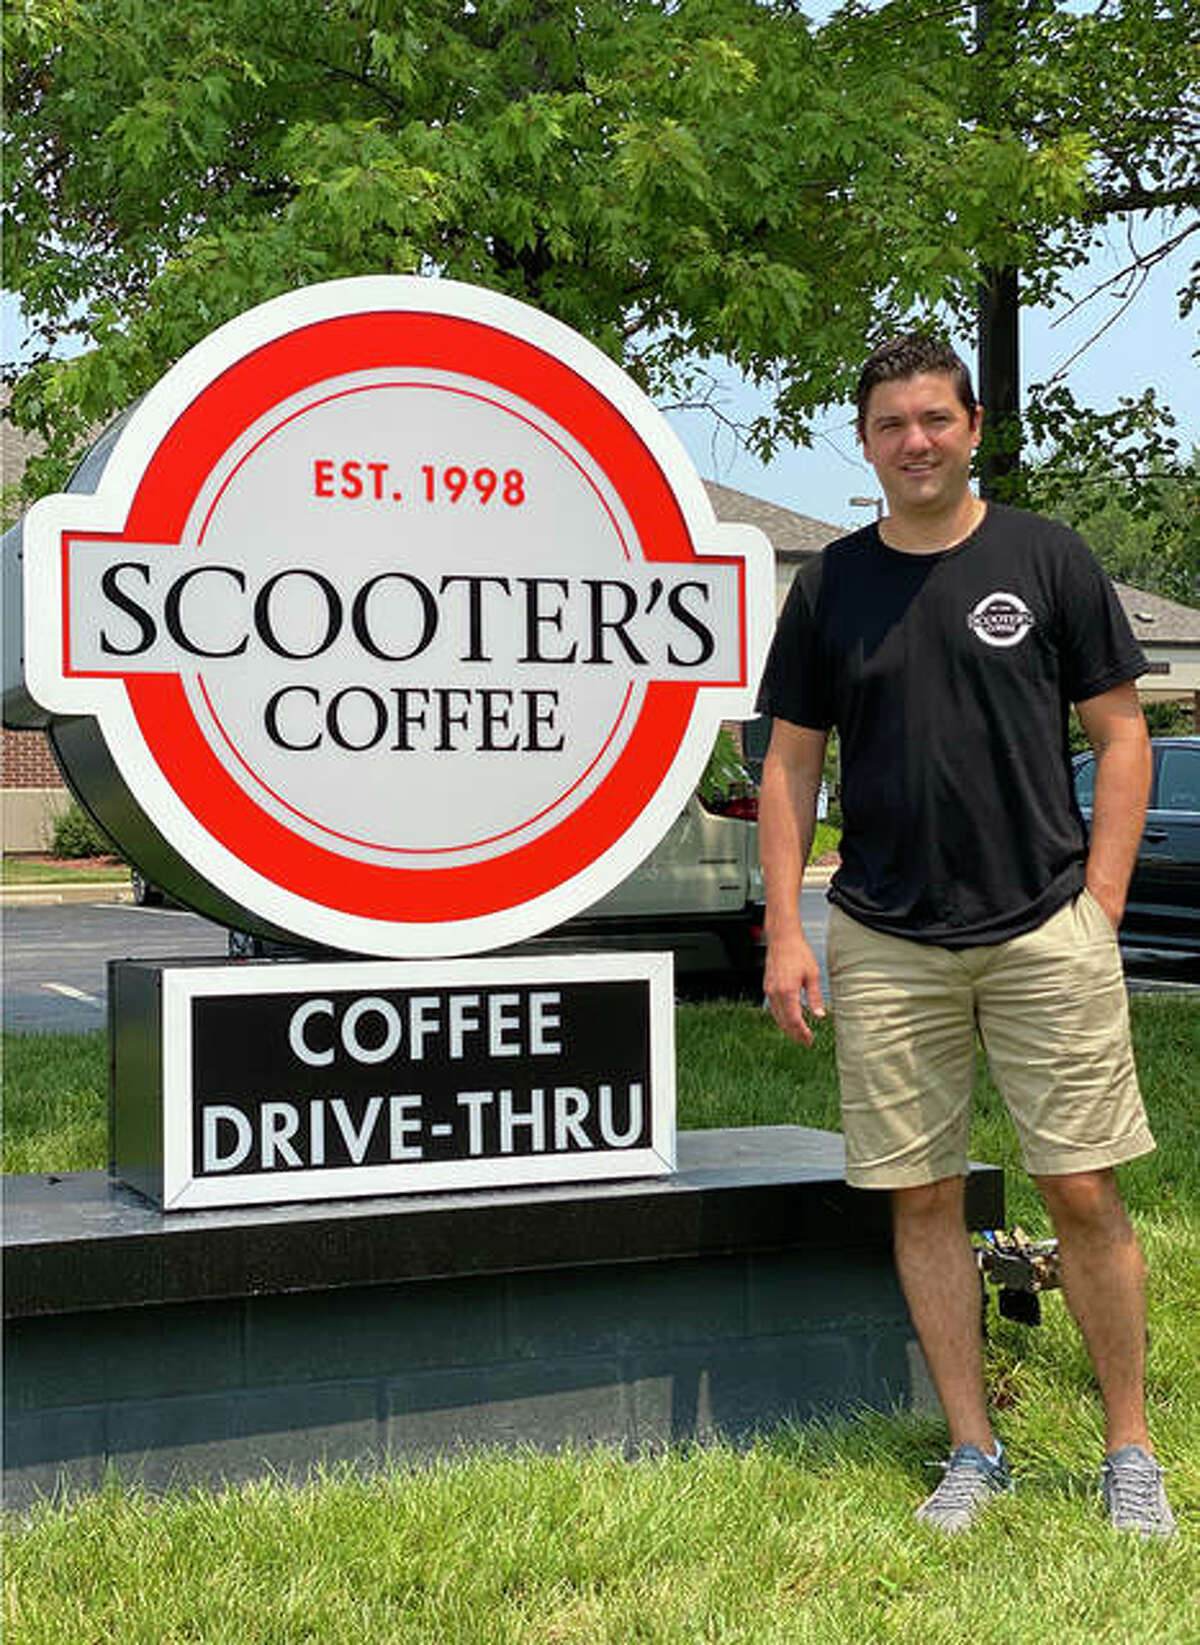 Scooter's Coffee owner Robert Semptimphelter is shown next to his new business in Glen Carbon.